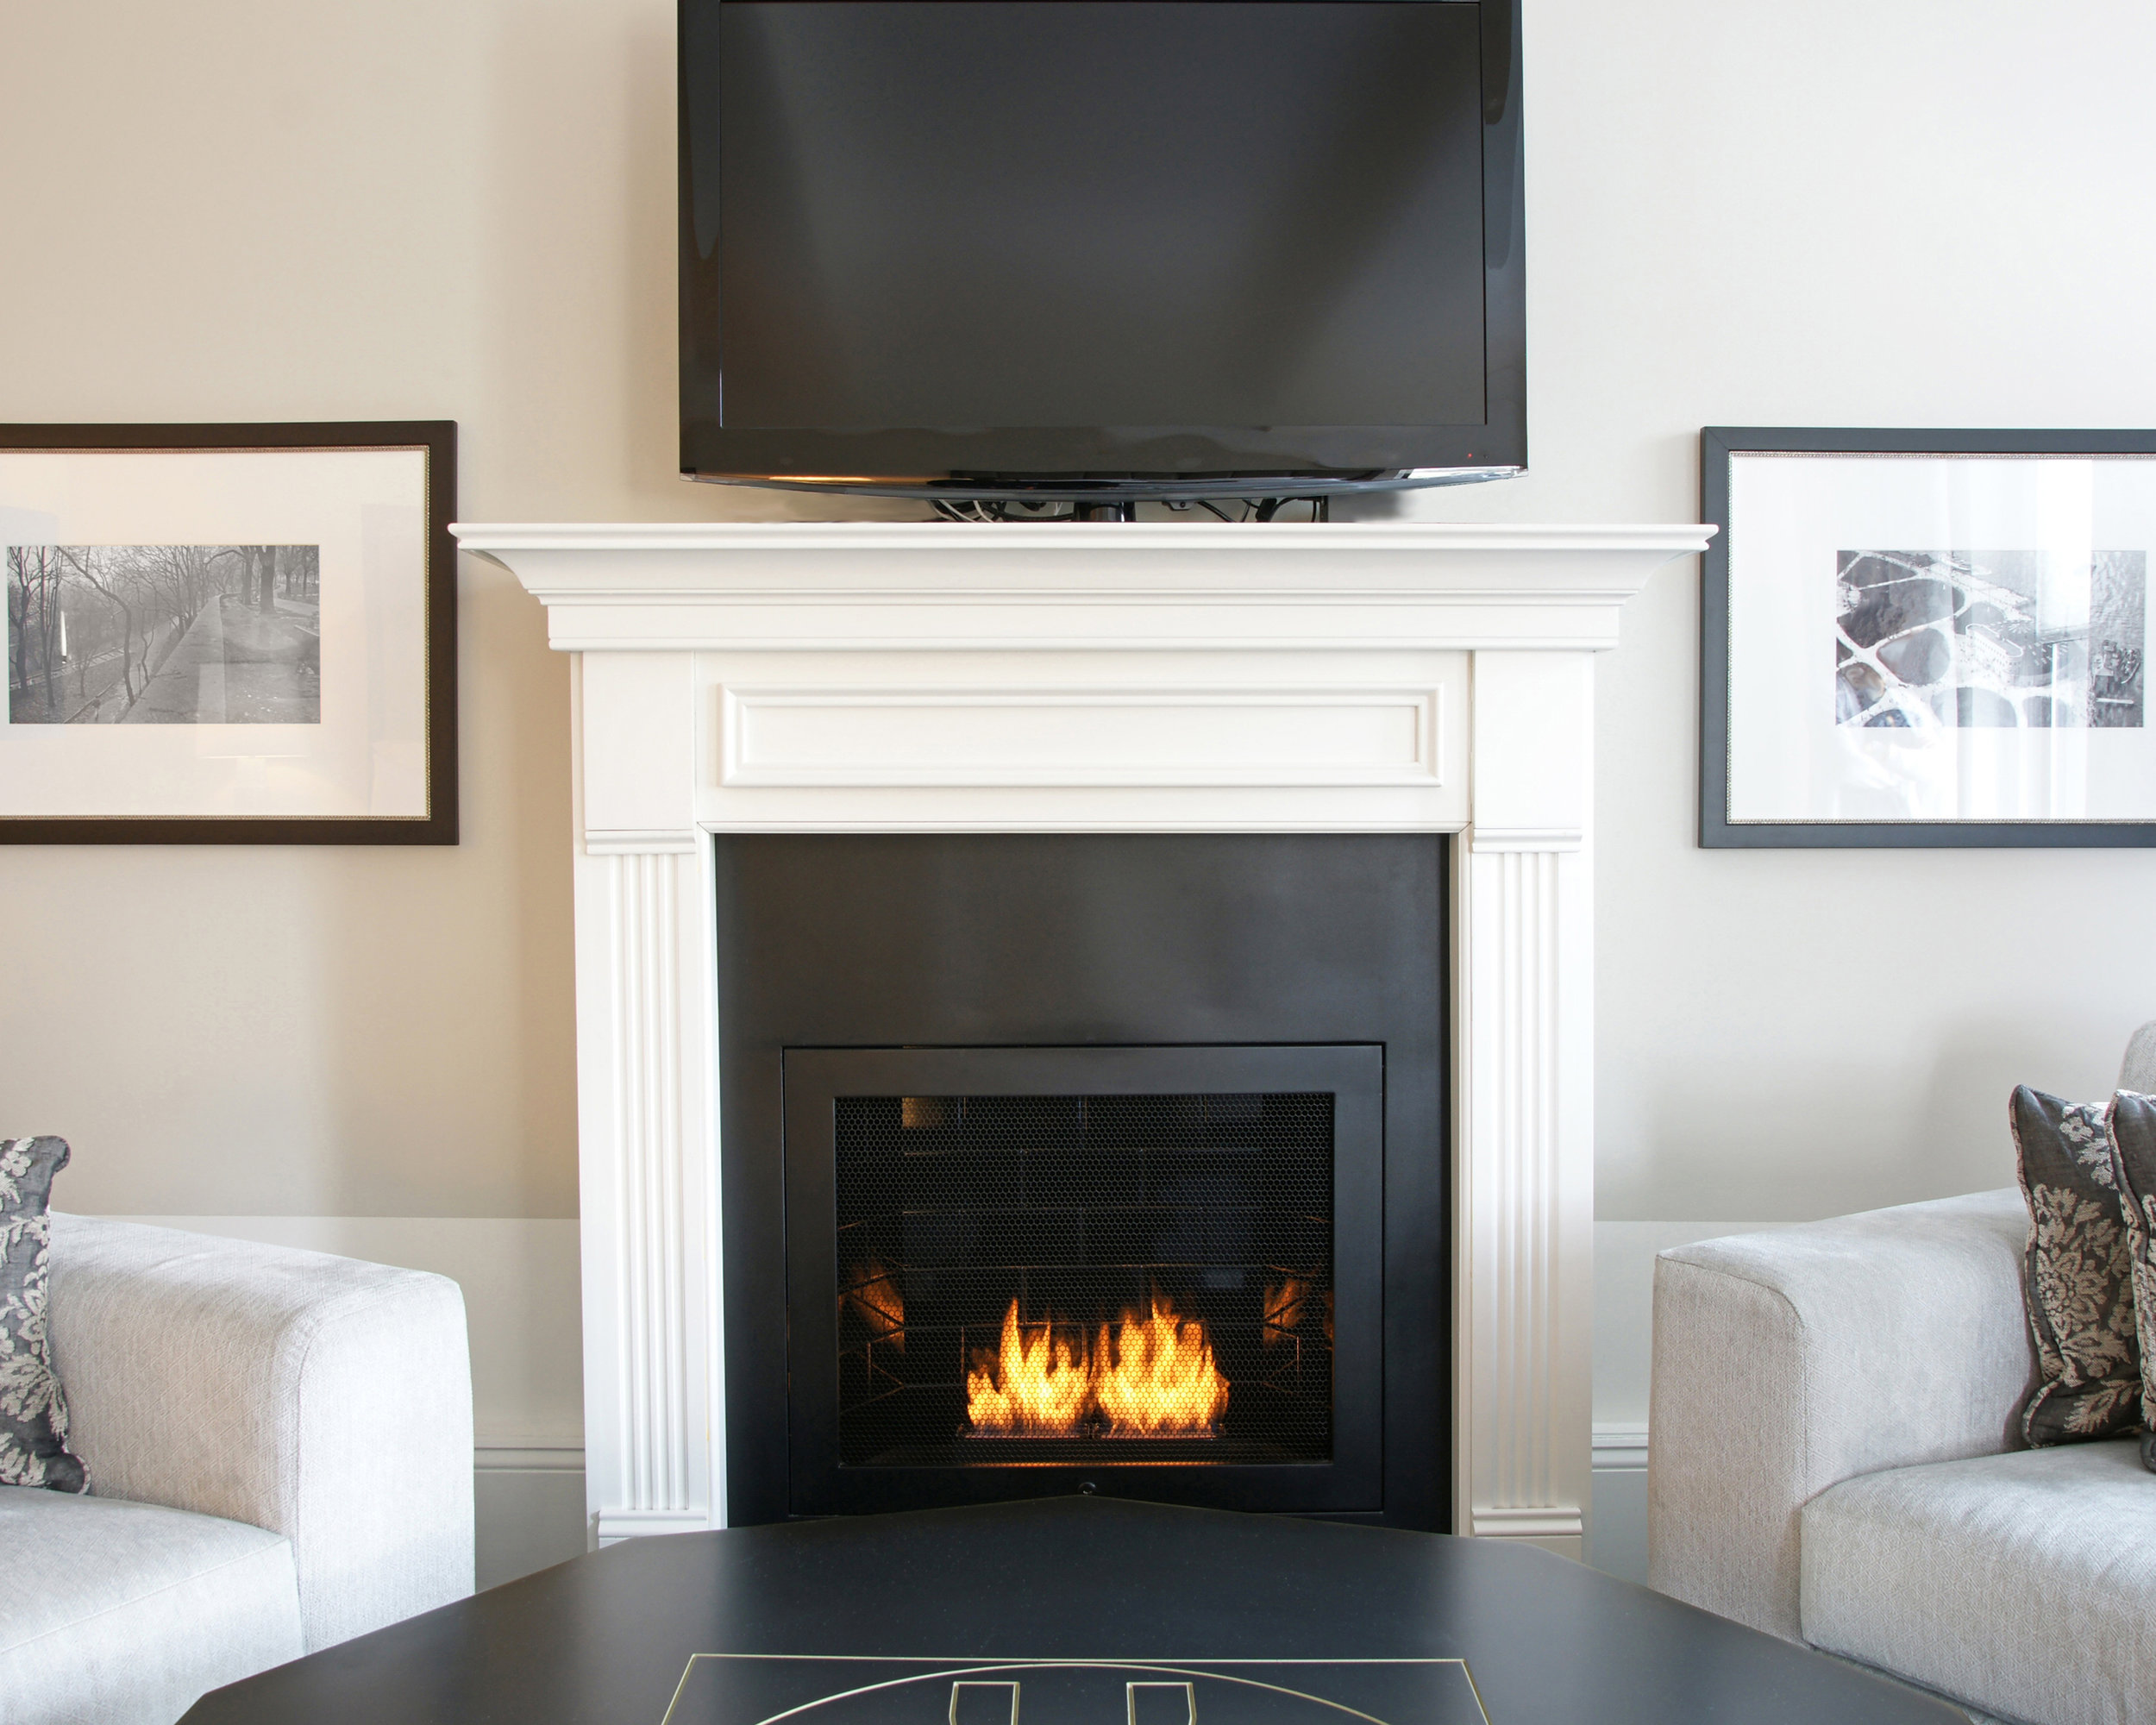 "Designer: Rottet Studio | Architect: Stonehill & Taylor Architects | Ventless Fireplace: Custom unit - Black Powder Coated Steel - 34"" W x 40"" H x 11.5"" D (outside dimensions)"